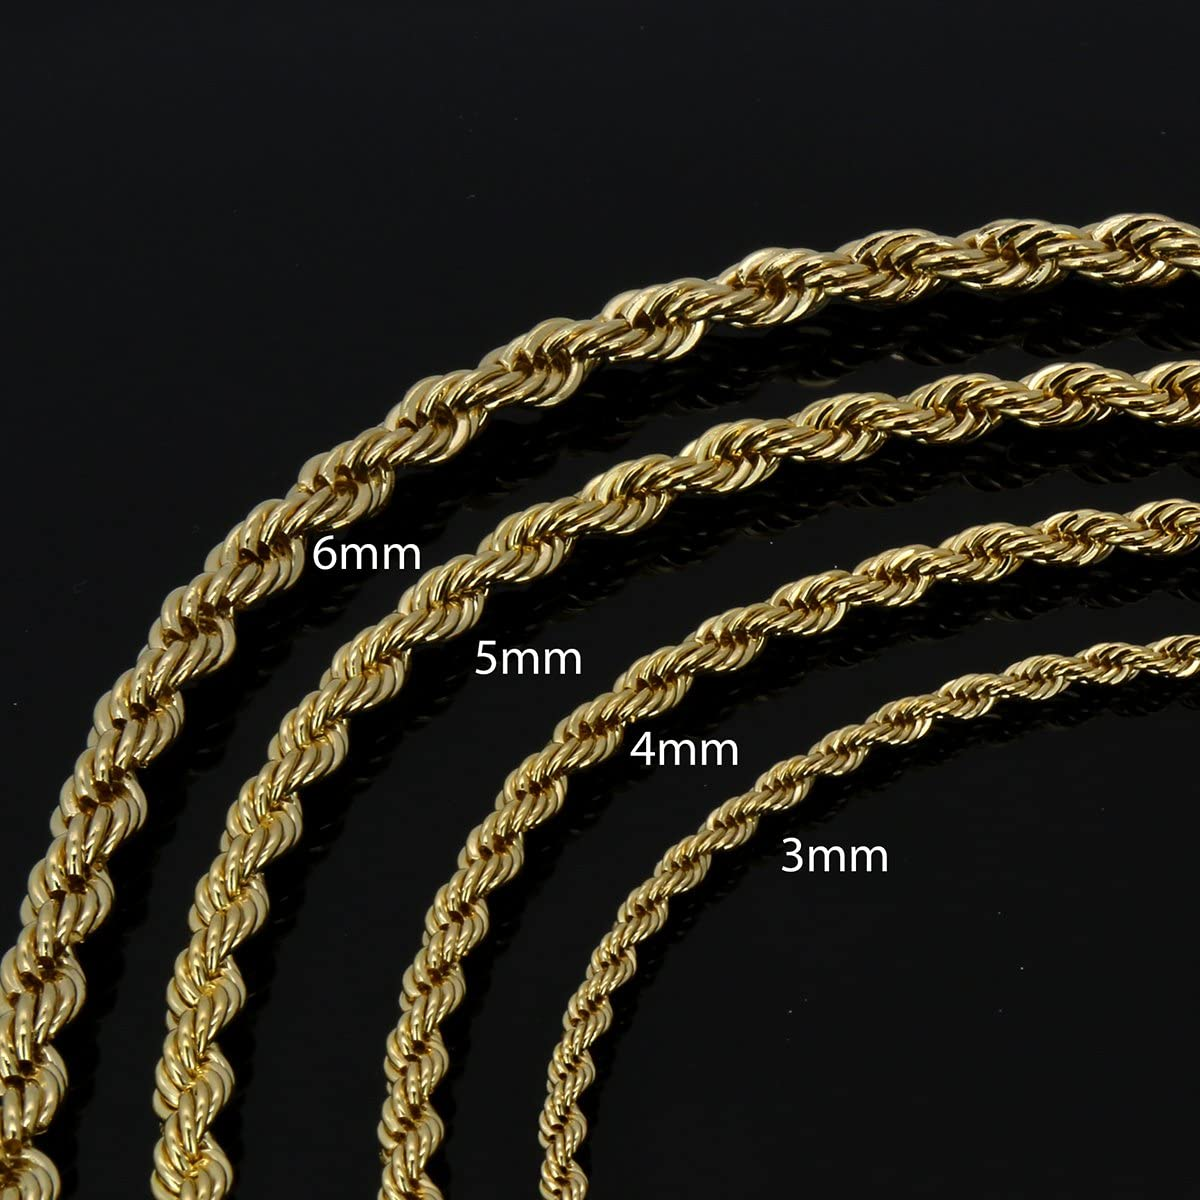 6mm 20-36 /& Gold Plated Bottom Grillz L2JK 14K Gold Plated Hip Hop High Fashion Rope Chain Necklace 3mm